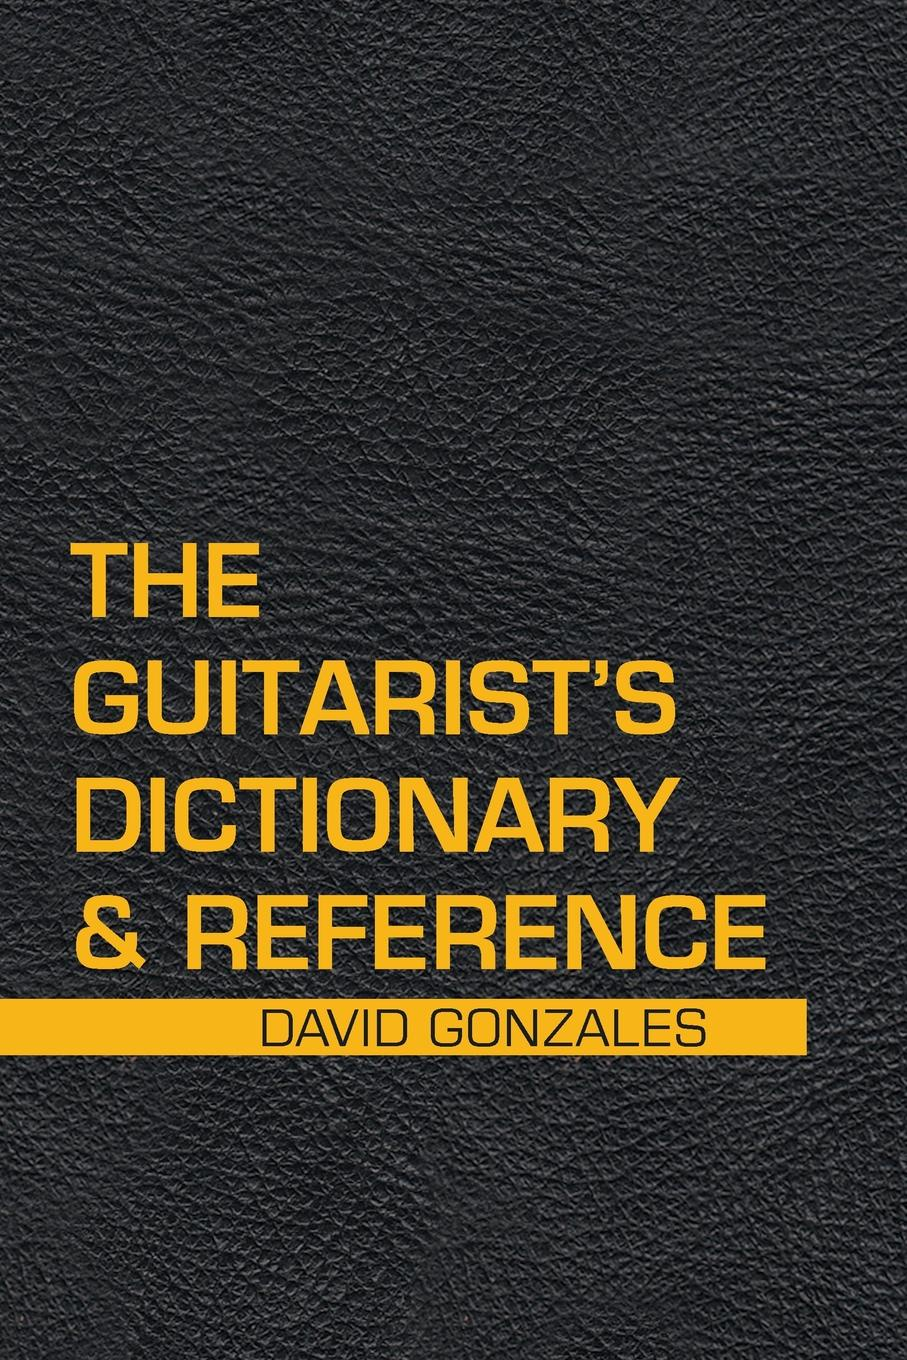 David Gonzales The Guitarist's Dictionary & Reference a dictionary of military terms